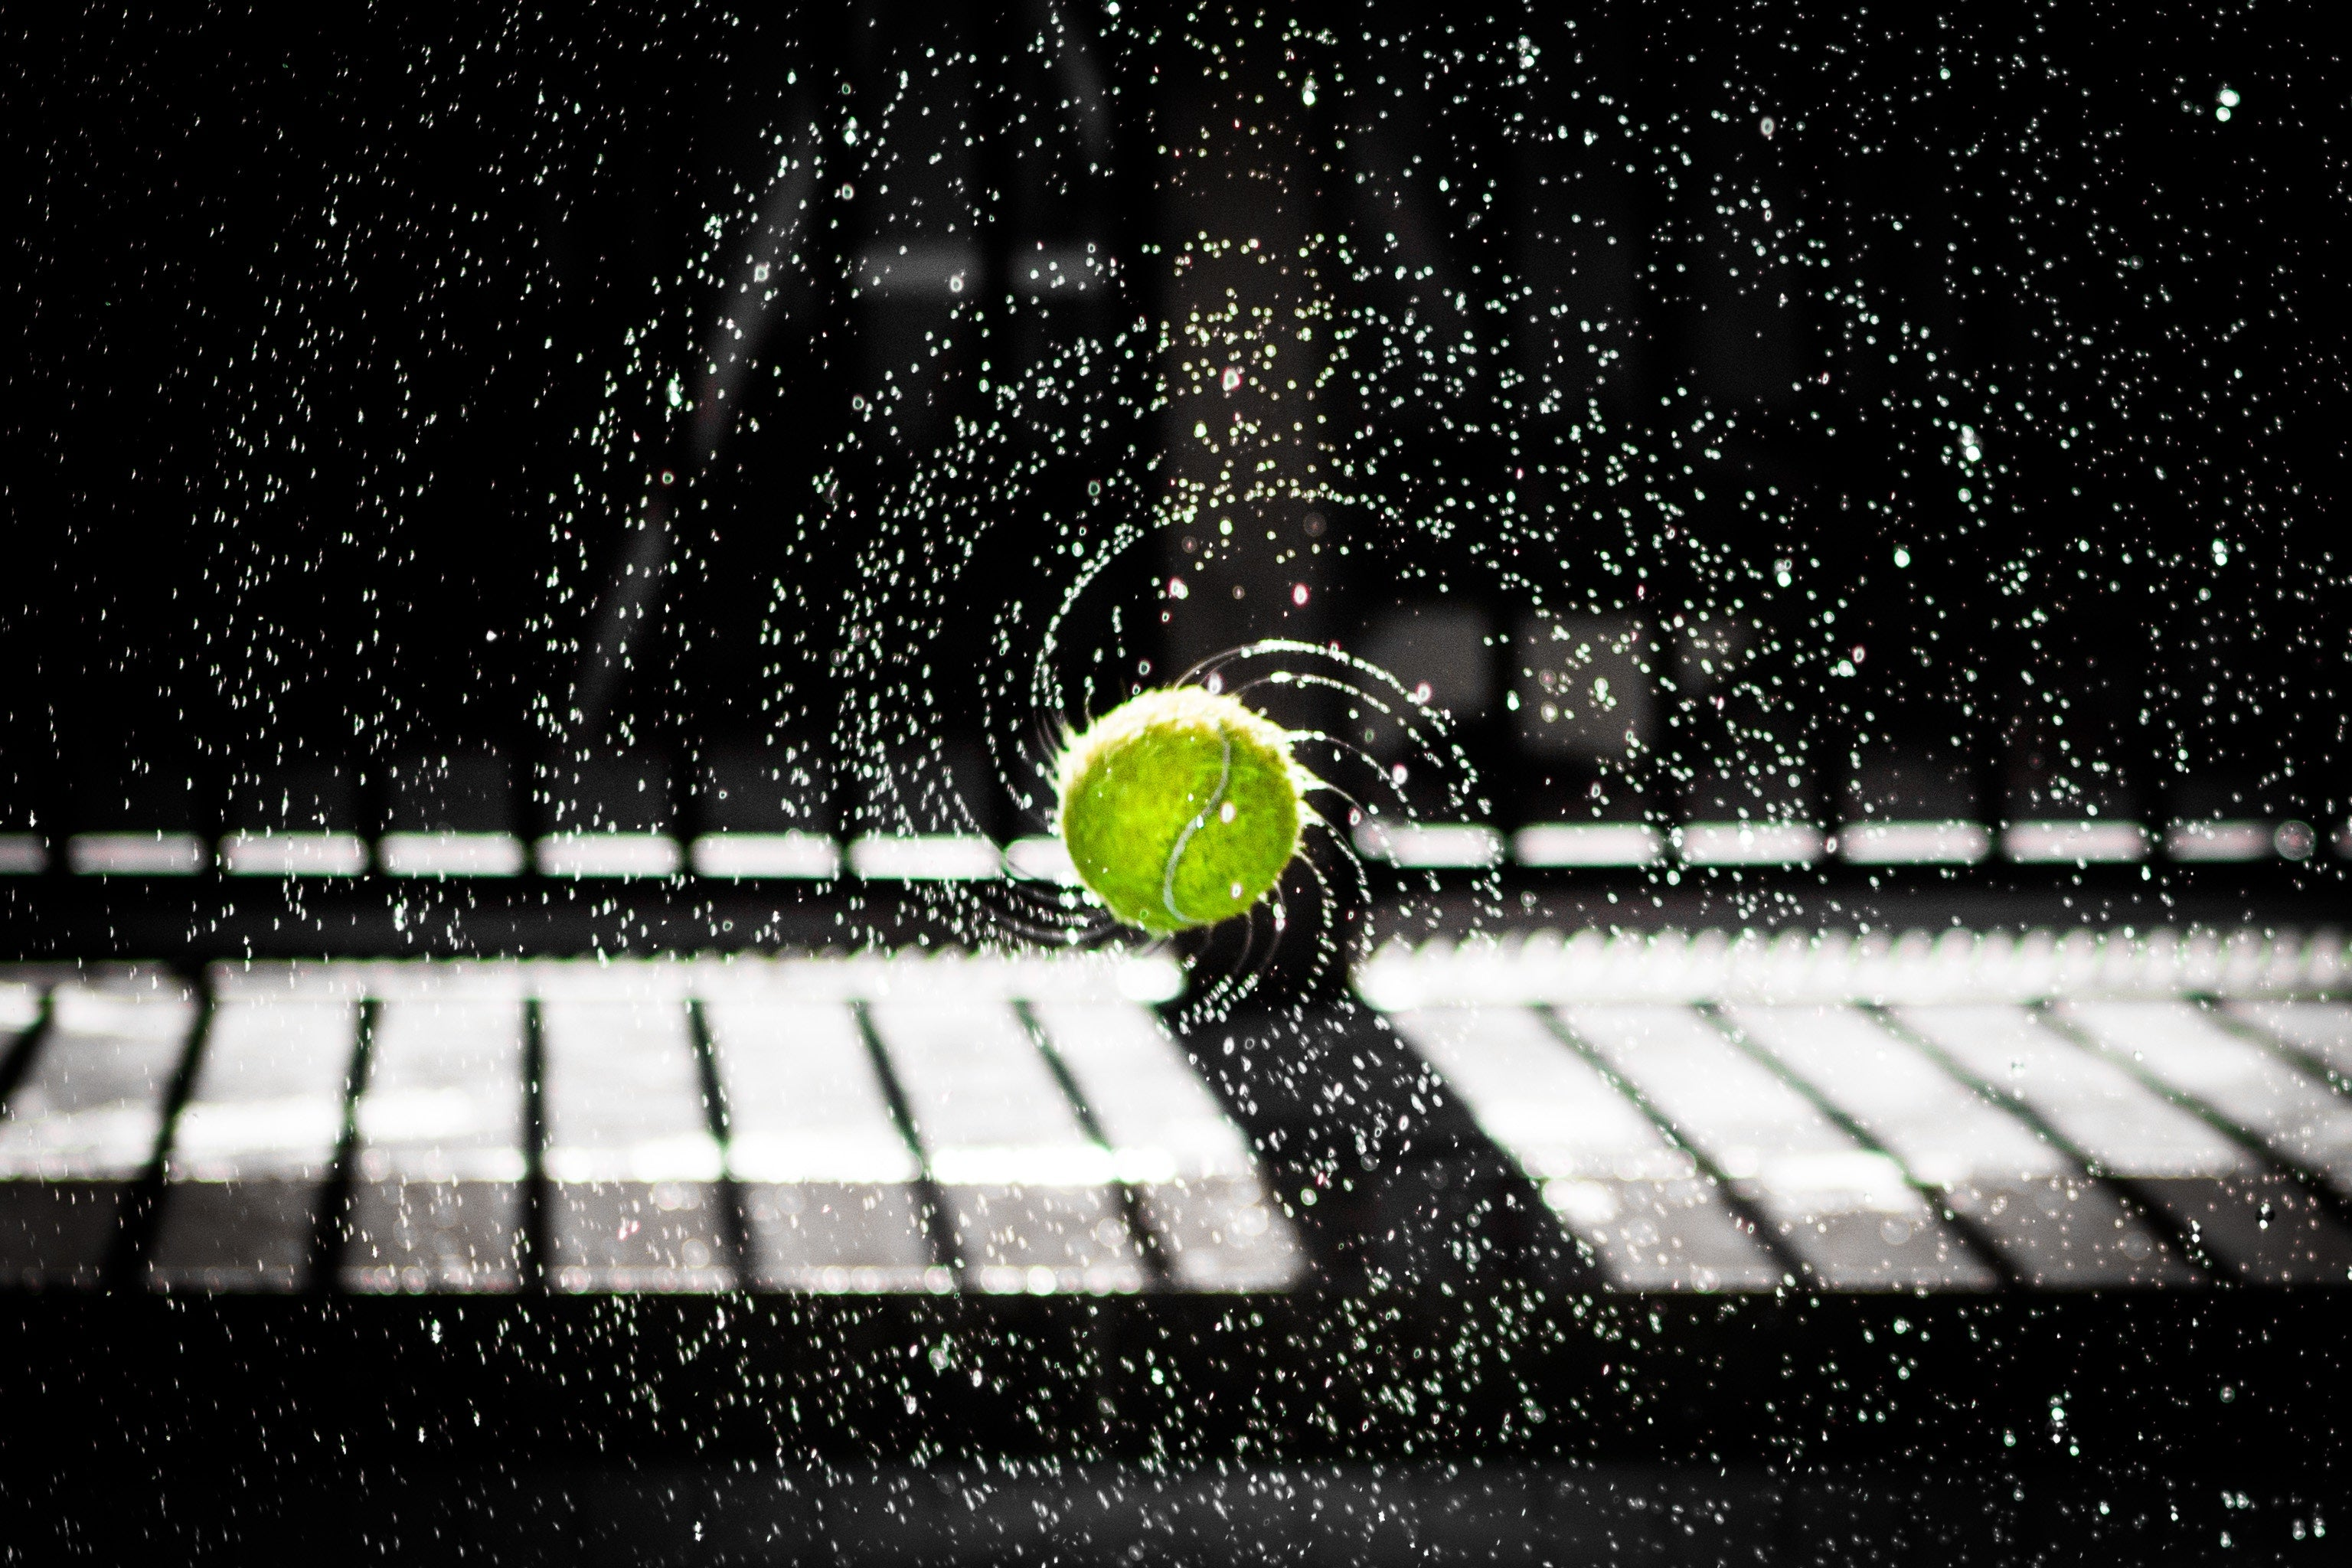 Water spraying from a tennis ball captured with a fast shutter speed